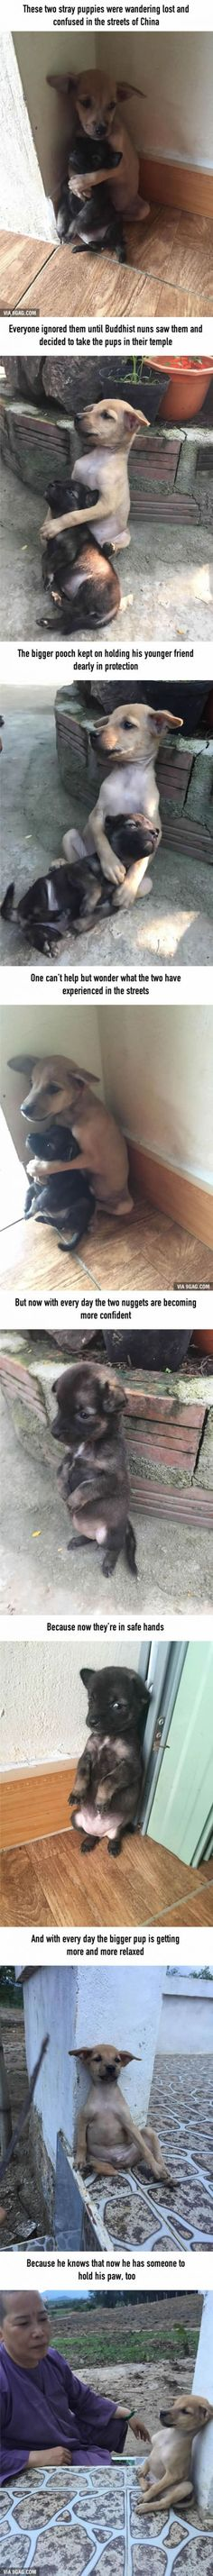 Stray Puppies Won't Stop Hugging Each Other Since They Were Rescued 9gag.com/